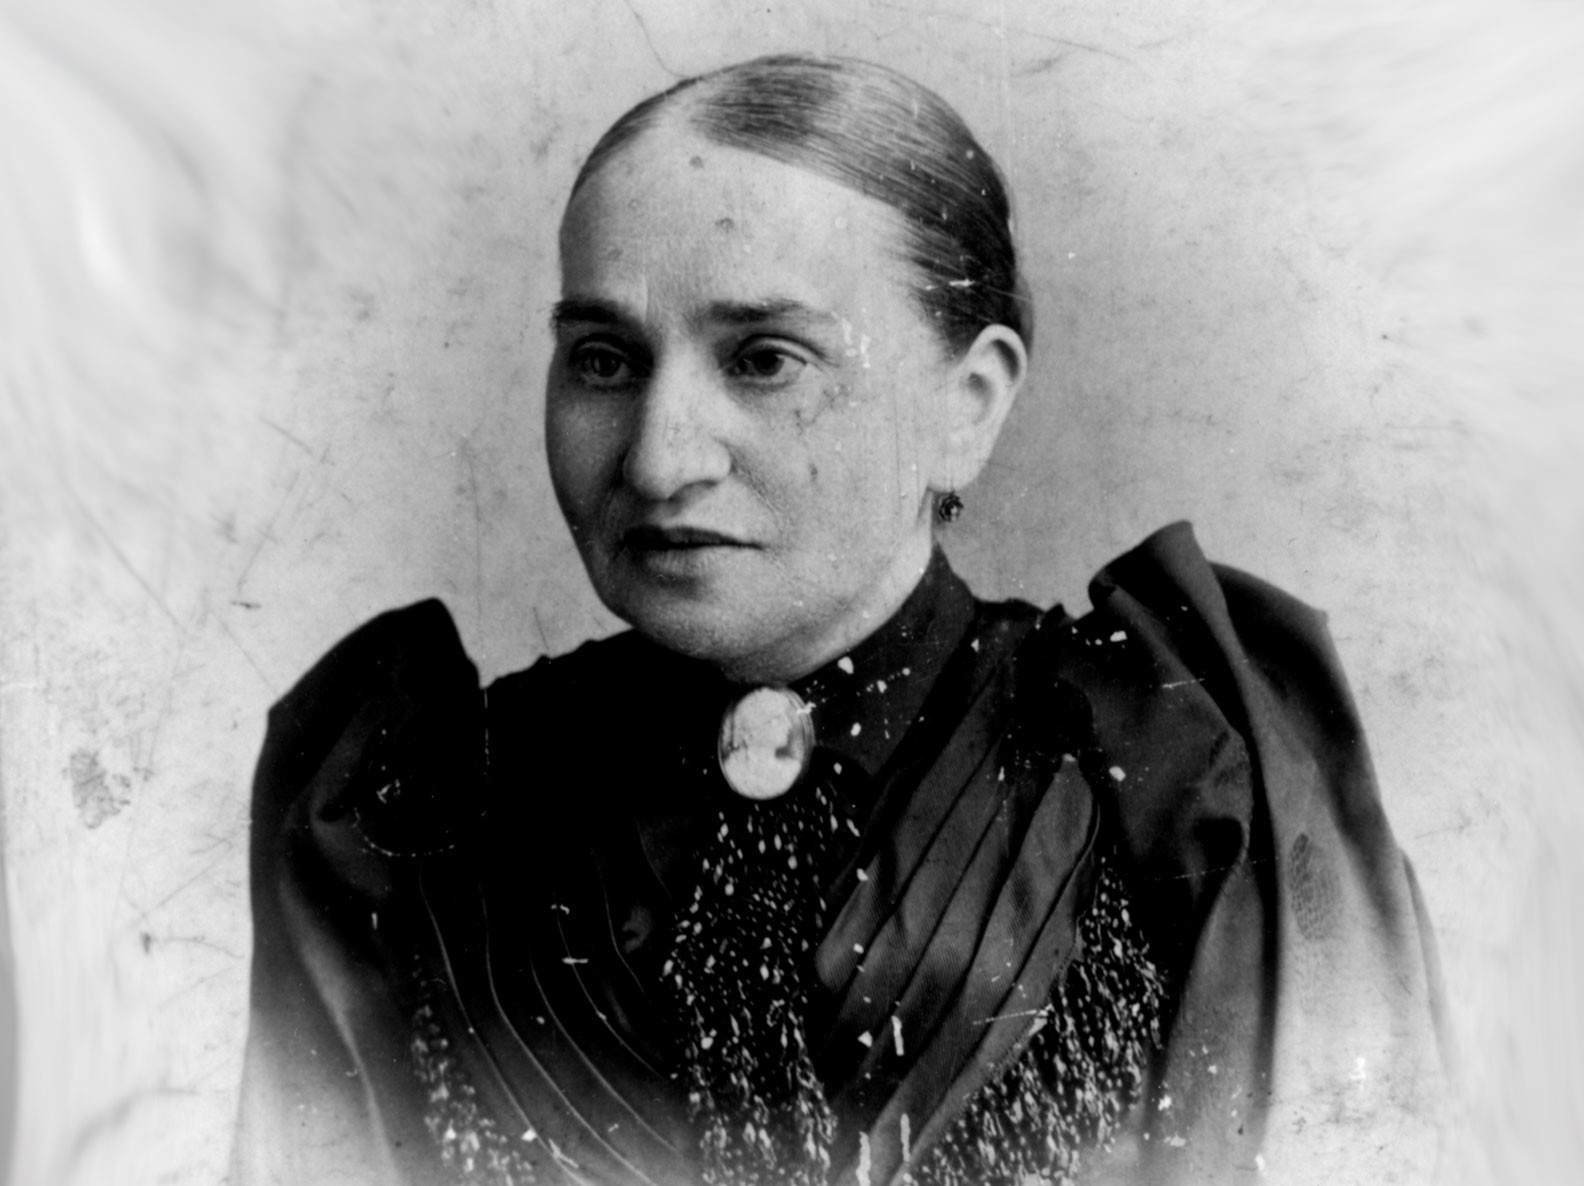 Photo portrail of Natalie Gumpertz circa 1895